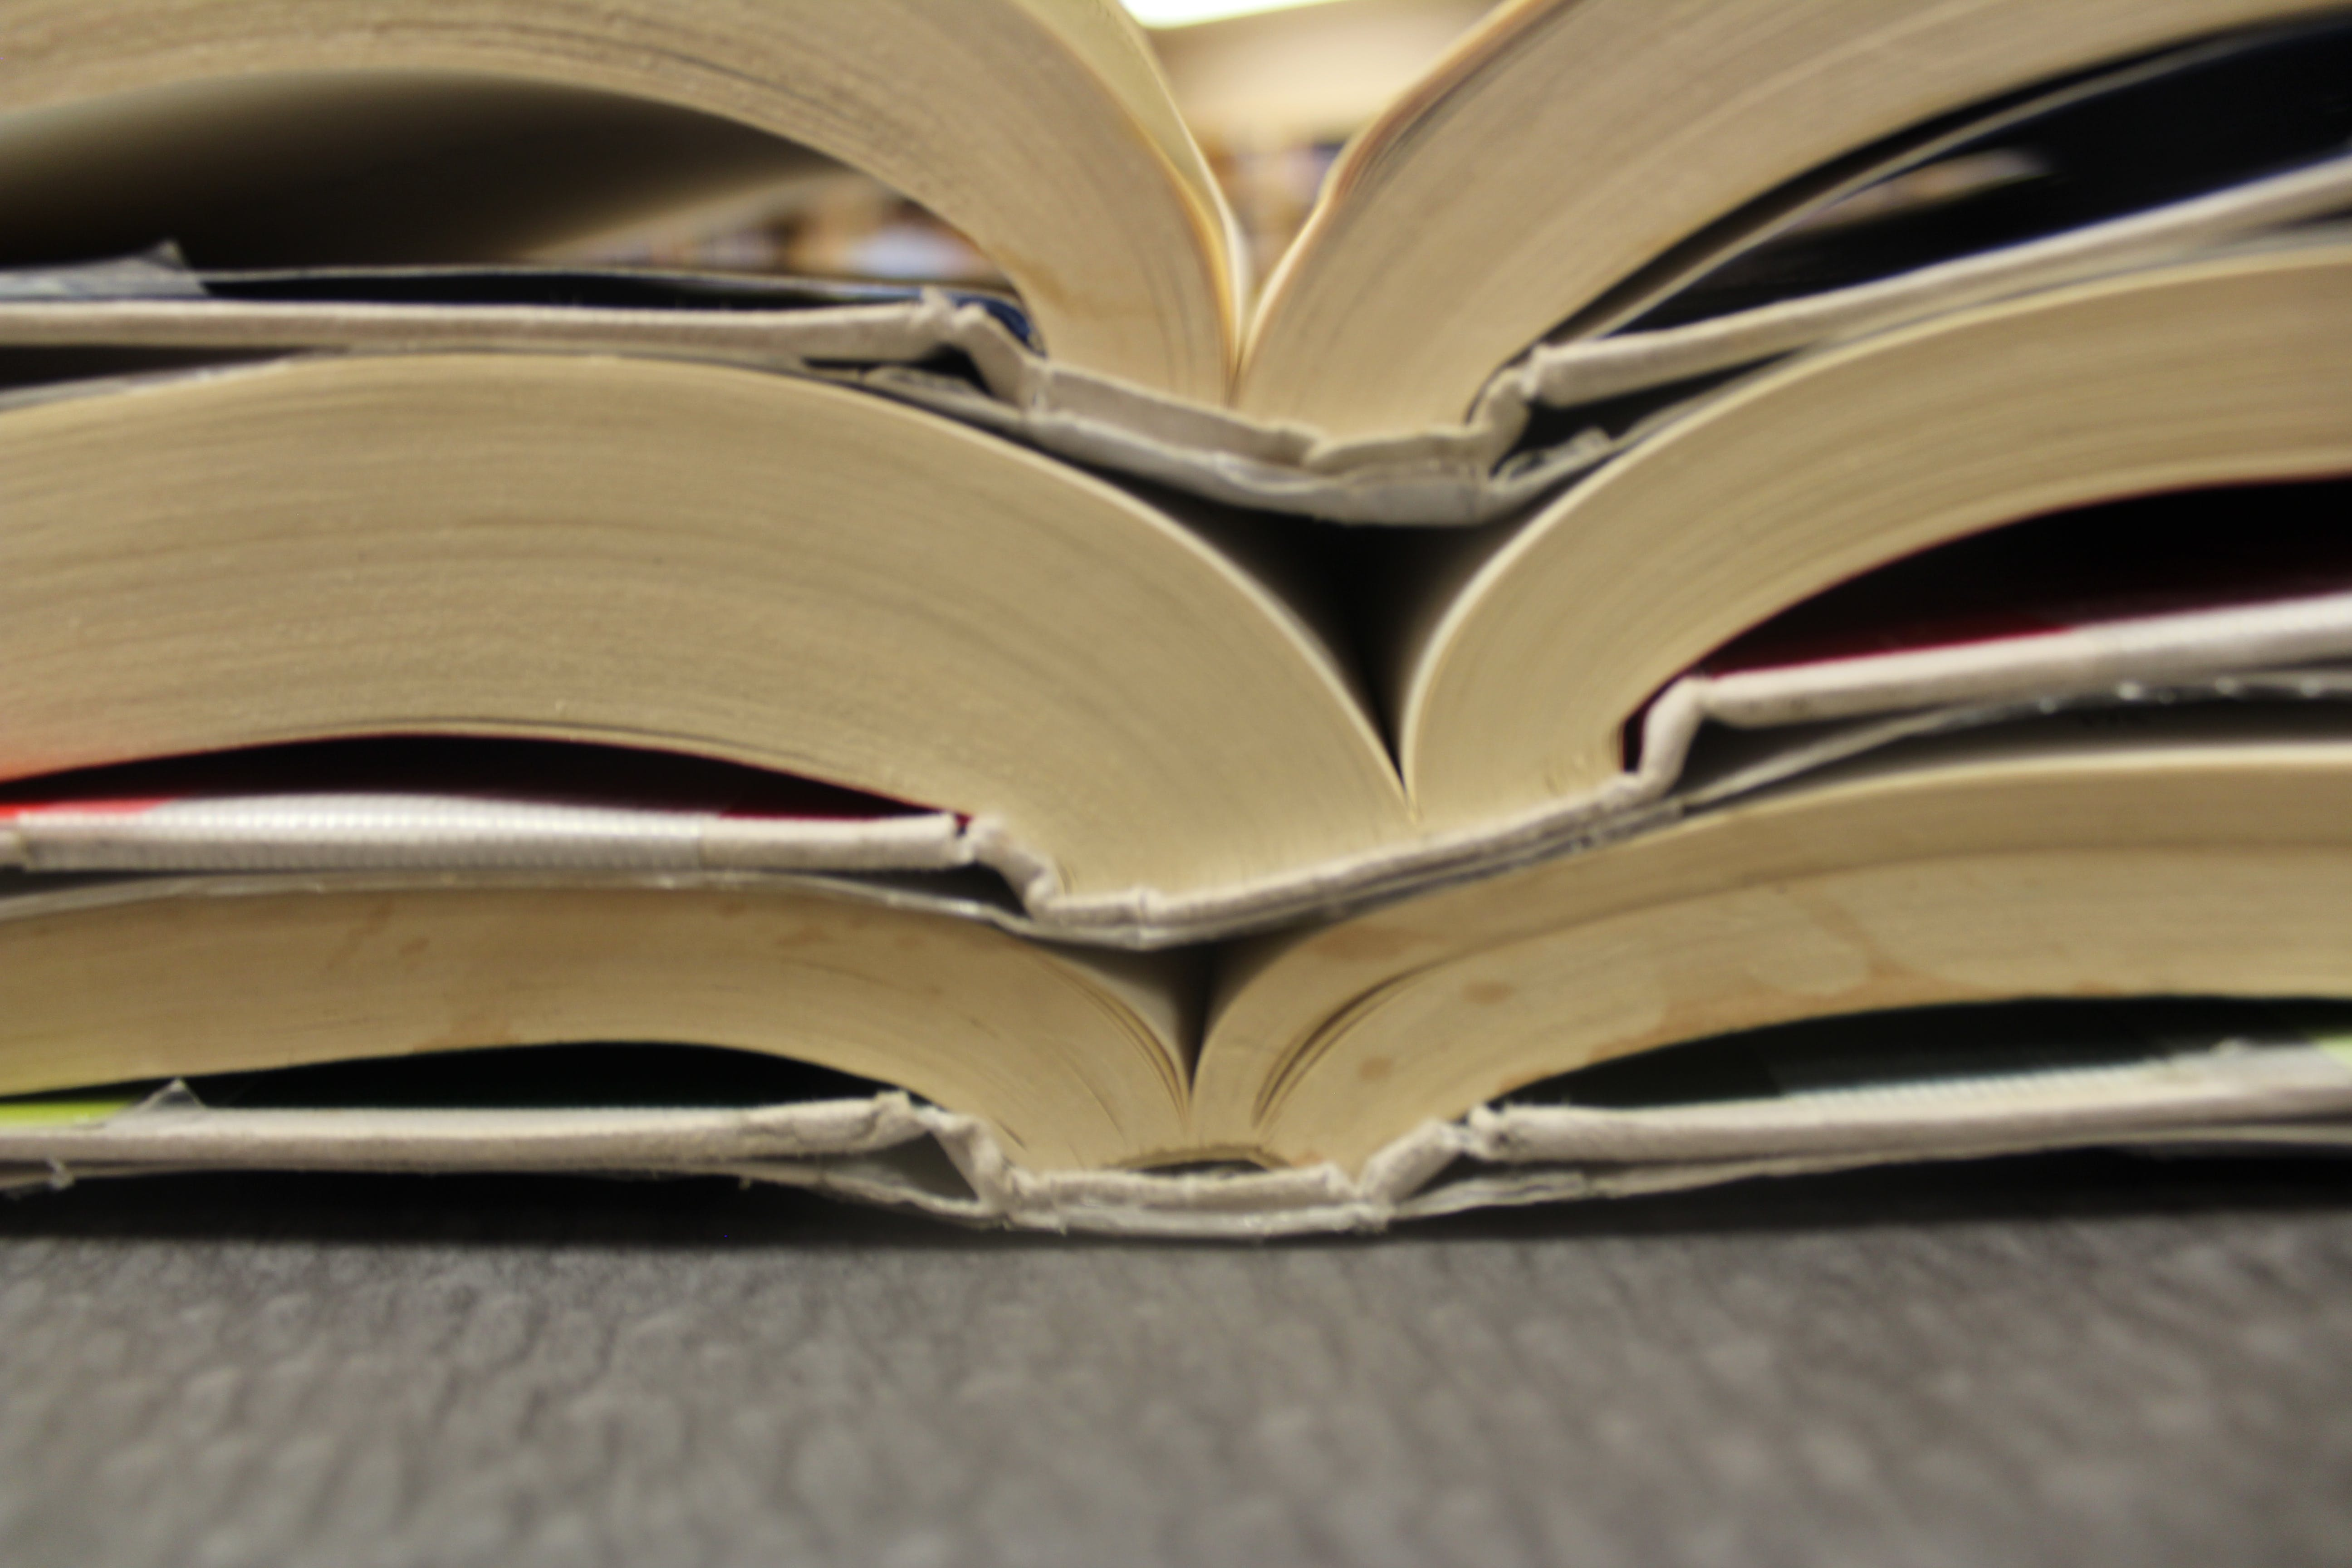 Free stock photo of book, book bindings, book pages, book series